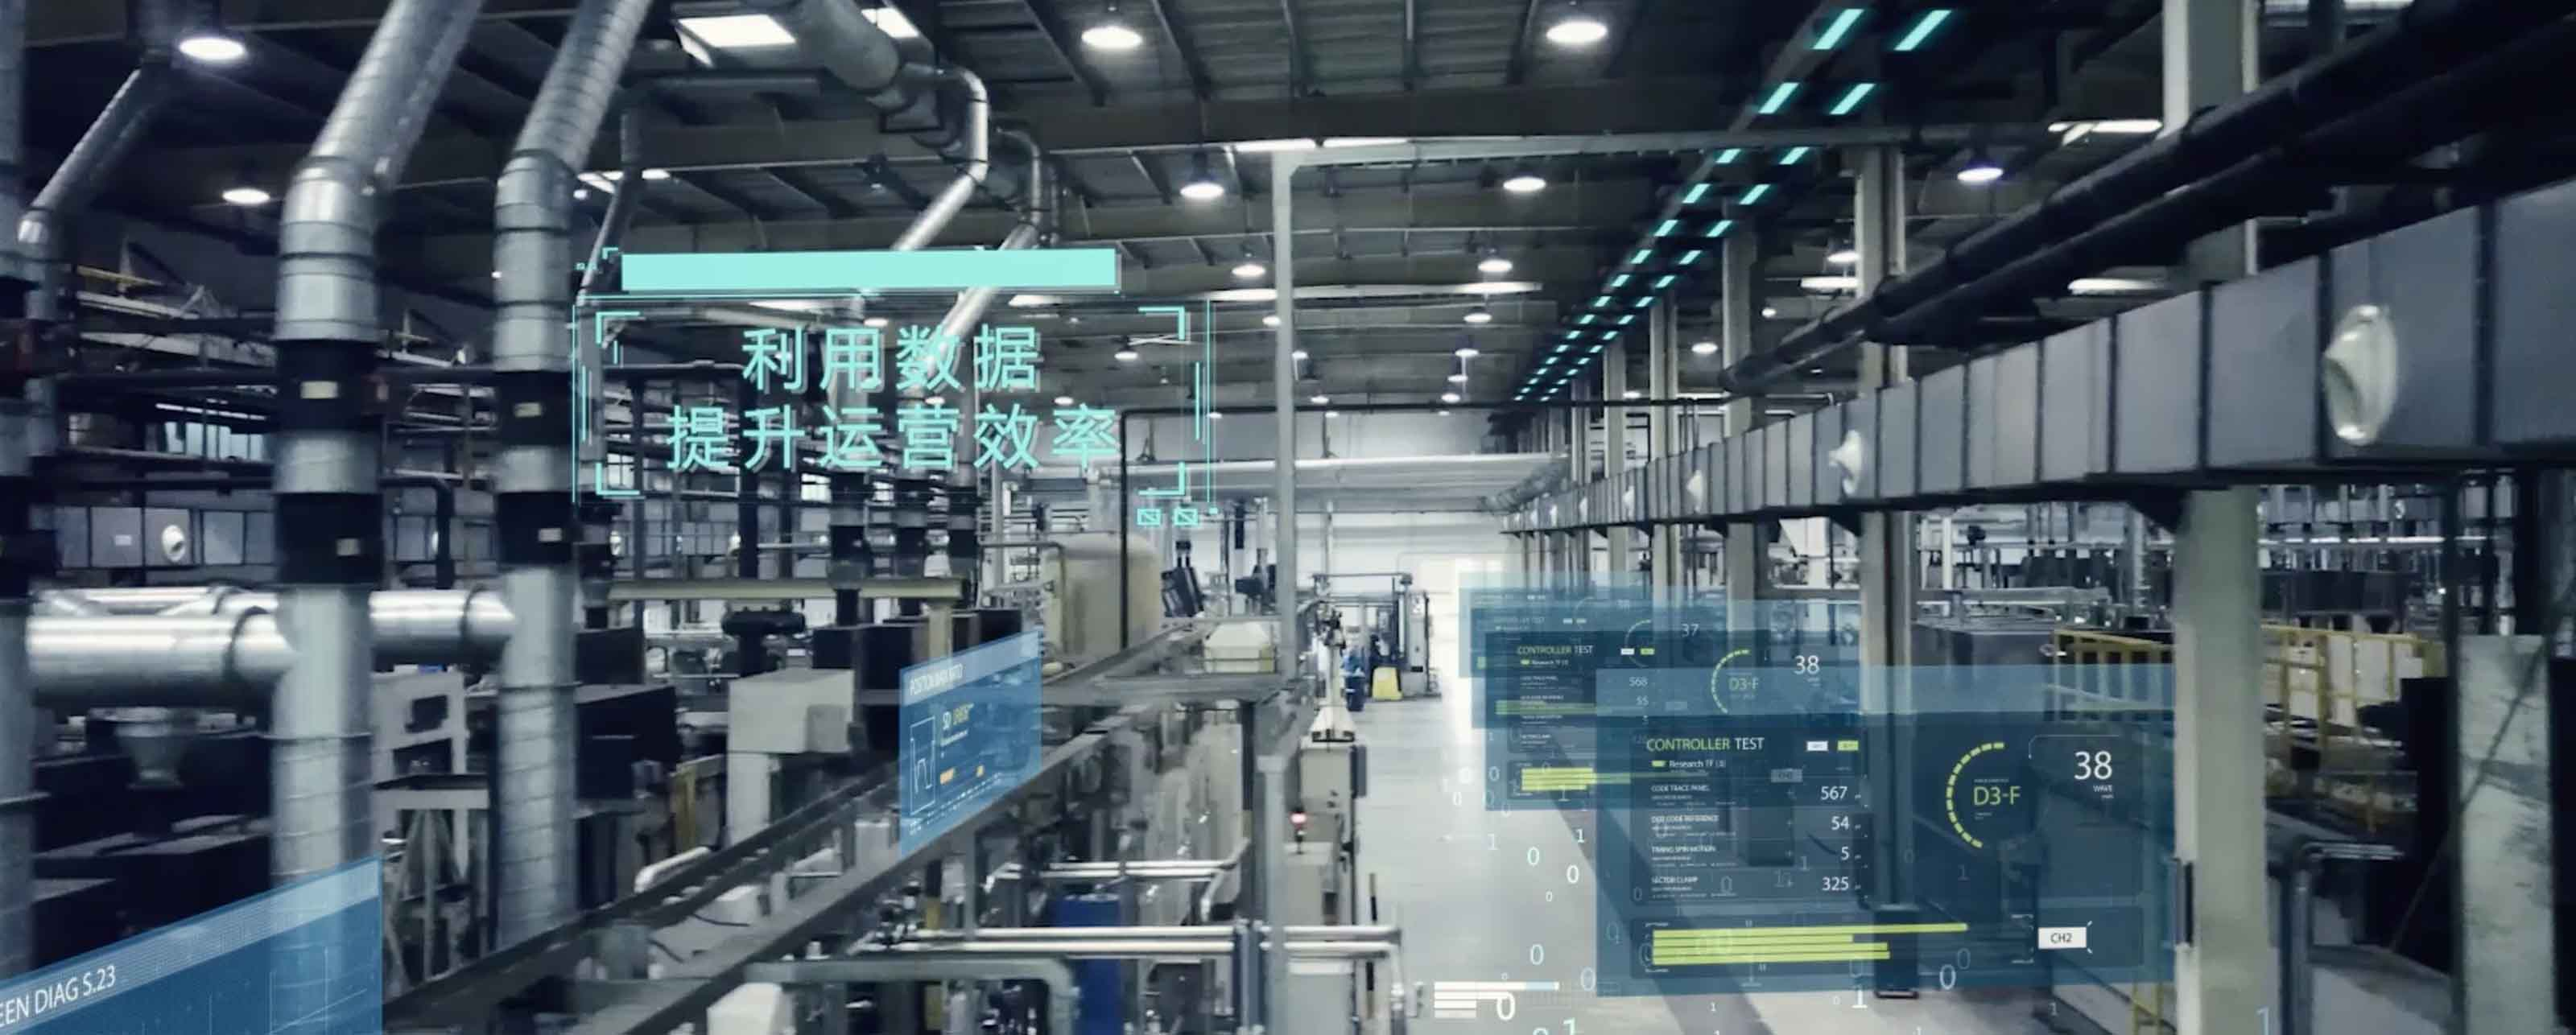 Manufacturing process digital twin from GE Digital in operation at SAGW